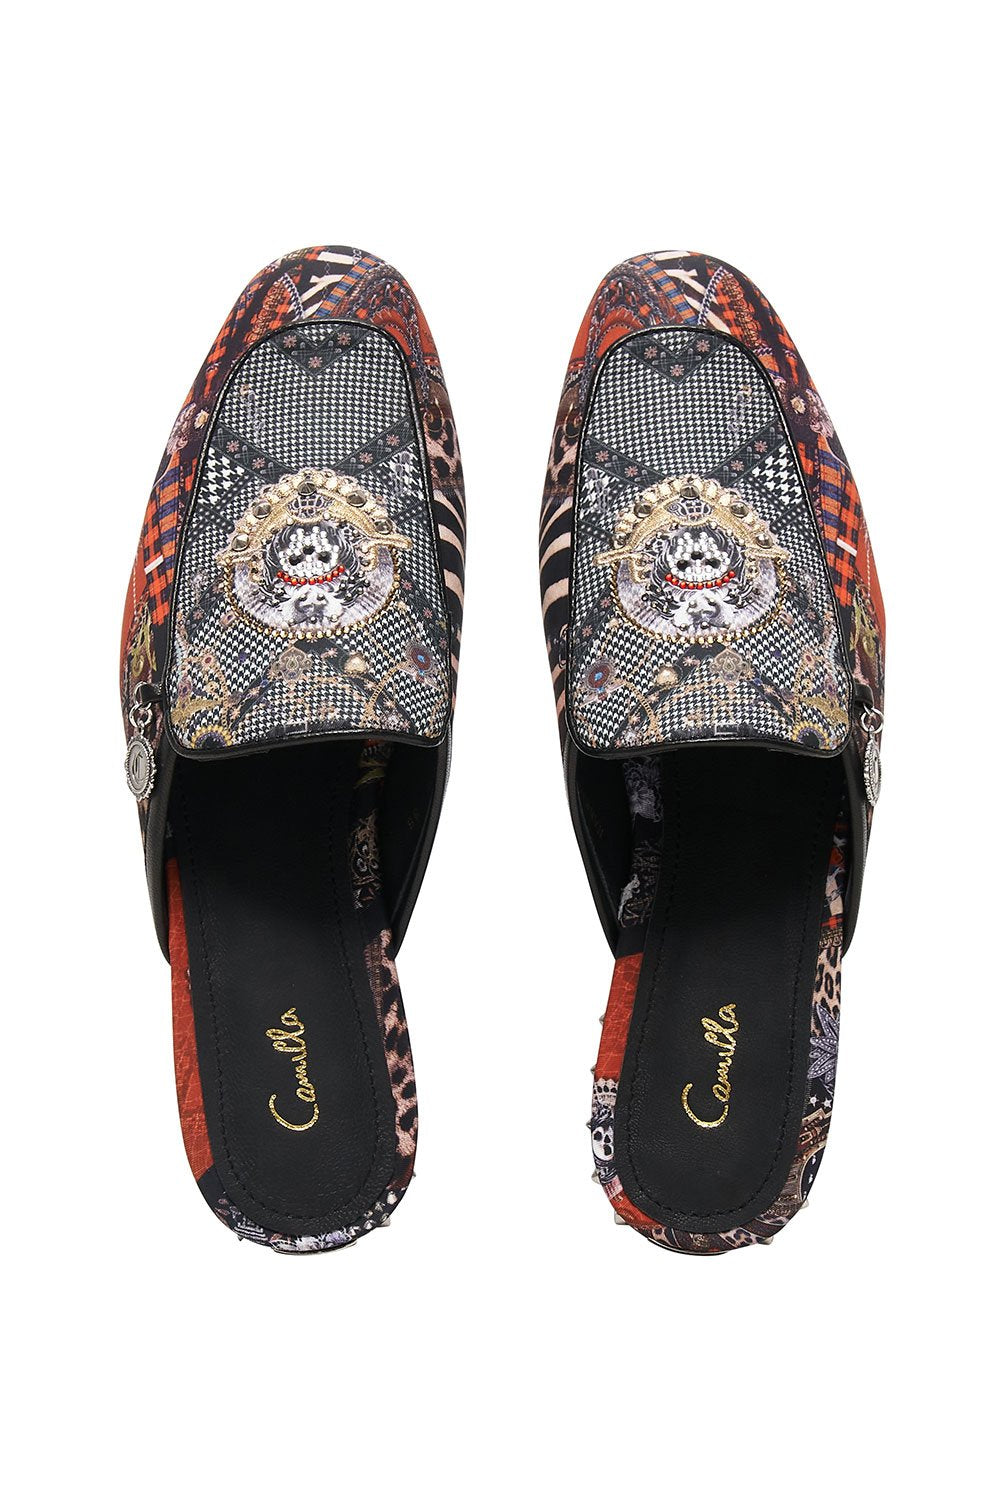 LOAFER SLIPPER LONDON CALLING